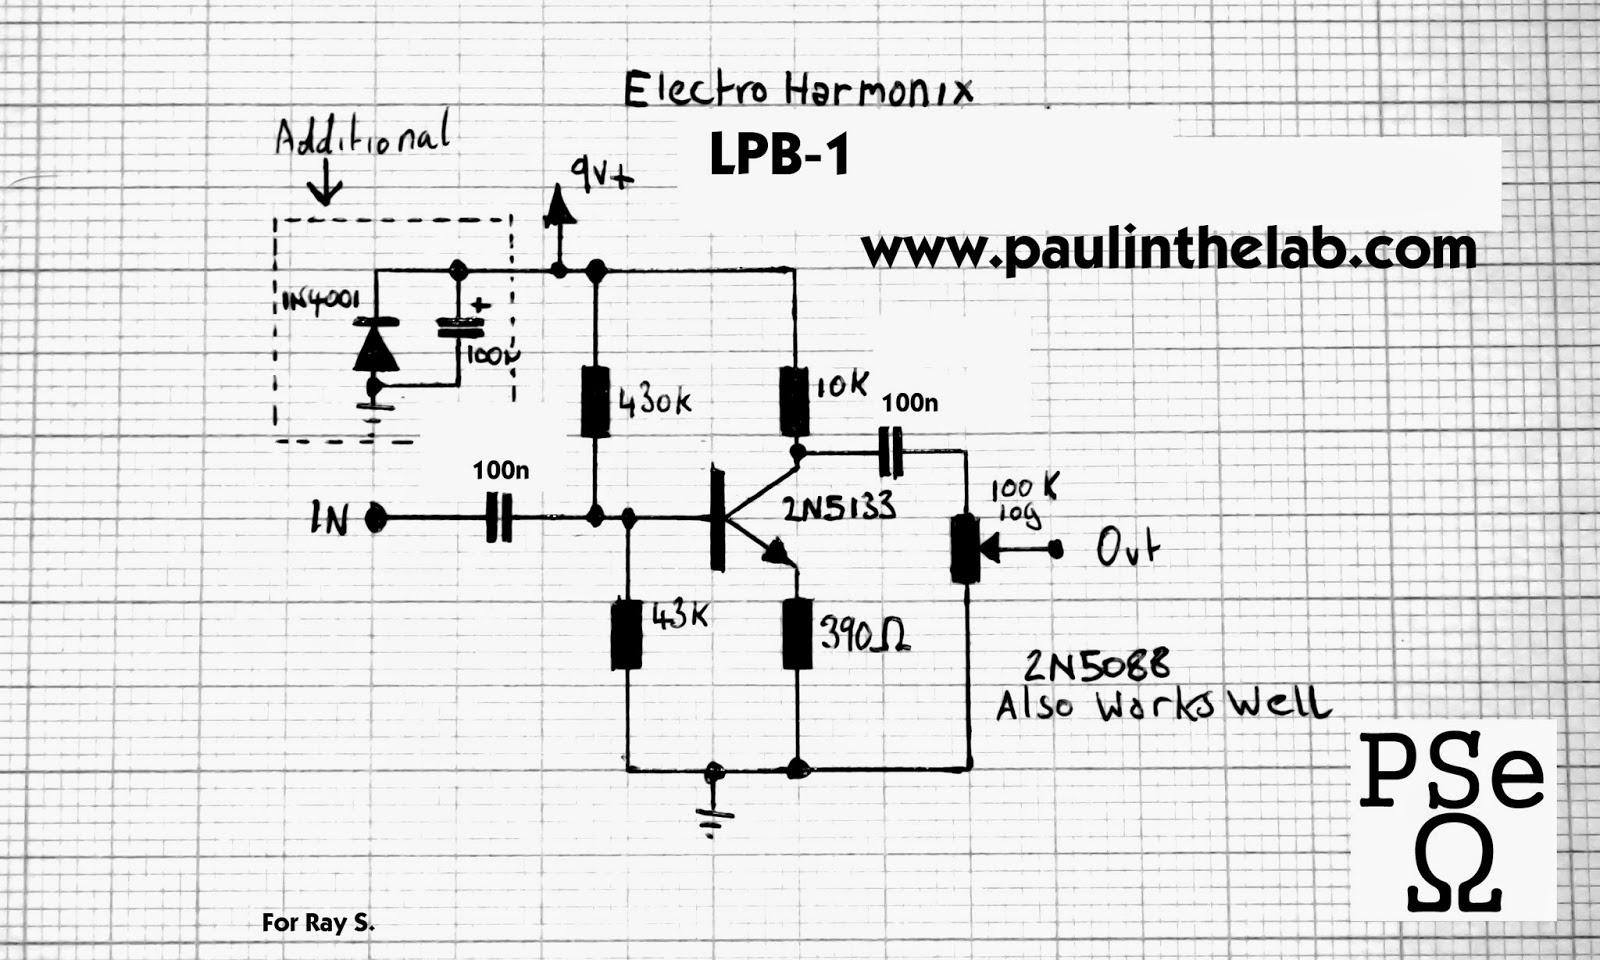 guitar fx layouts  electro harmonix lpb1 with trimmer